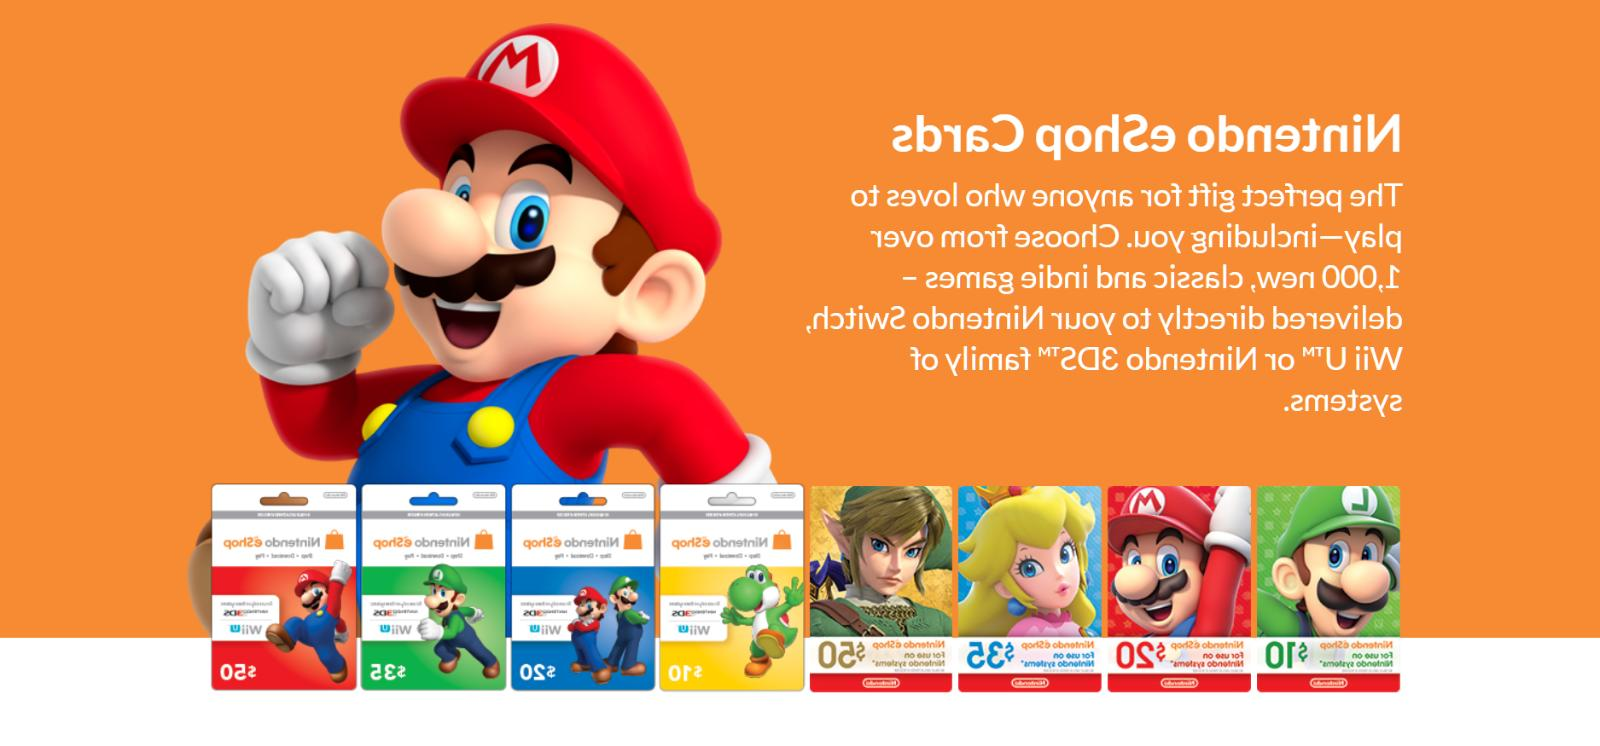 Nintendo Eshop $20 Gift Card New